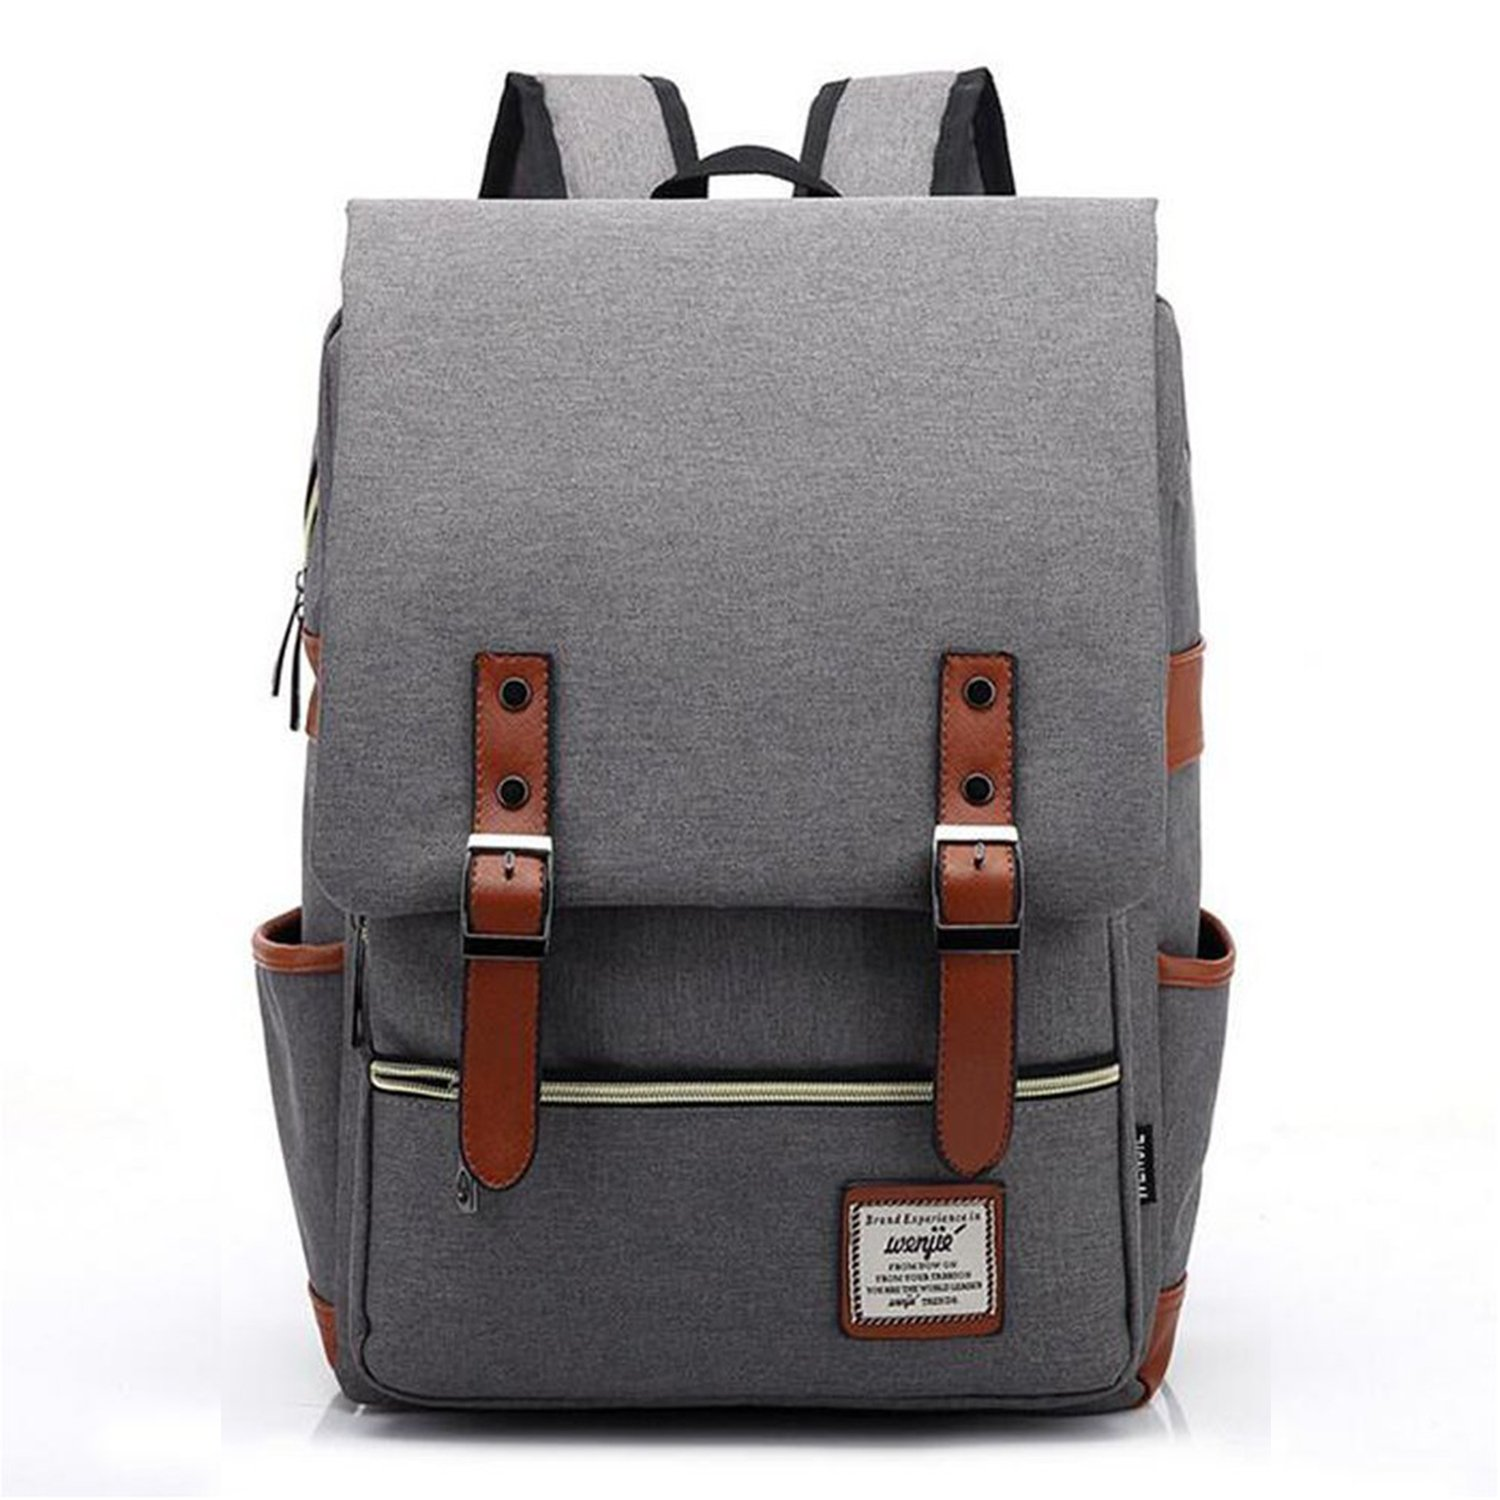 Vintage Canvas Backpack - Lightweight Canvas Laptop Outdoor Backpack, Travel Backpack with Laptop Sleeve, College School Bag with Side Pockets Canvas Rucksack for School Working Hiking (Retro Grey)